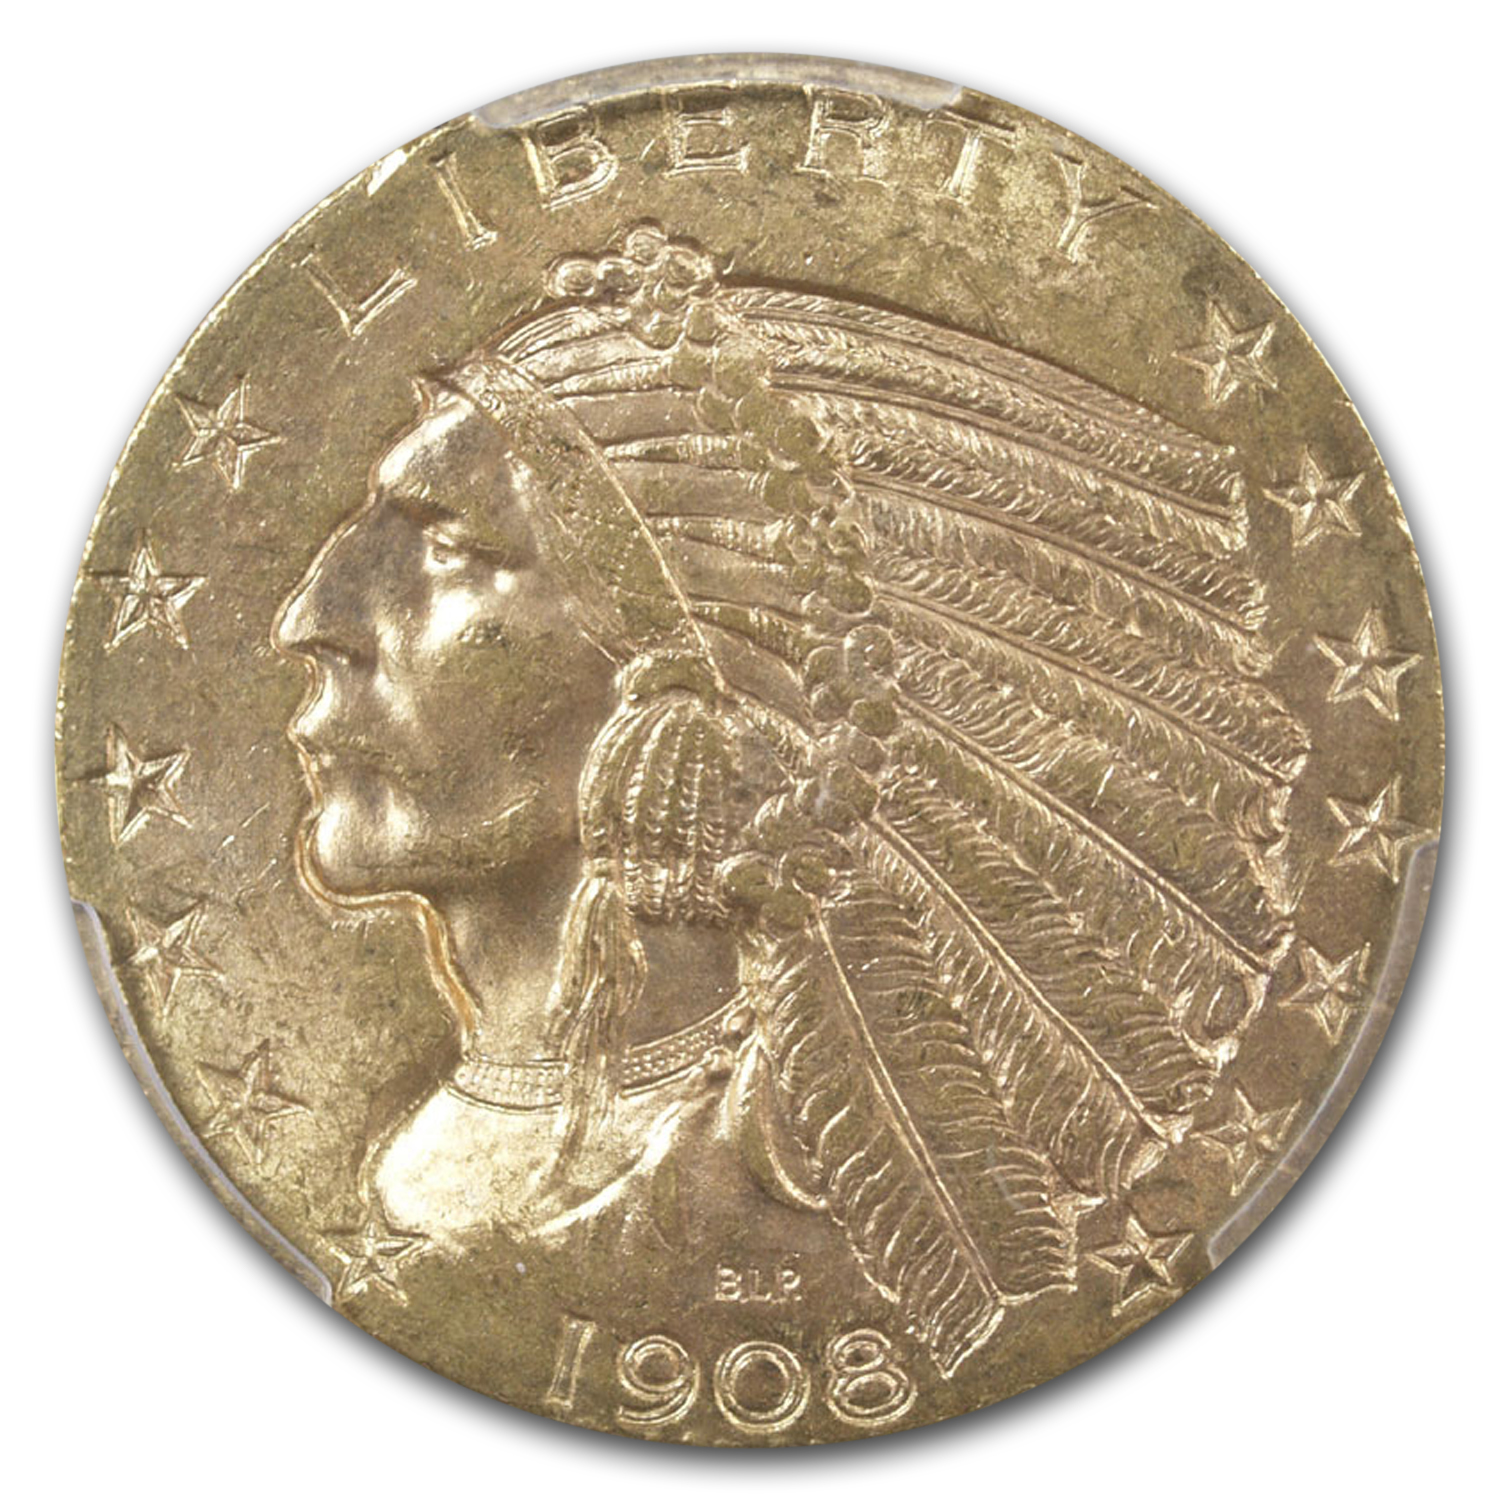 1908-D $5 Indian Gold Half Eagle - MS-63 PCGS